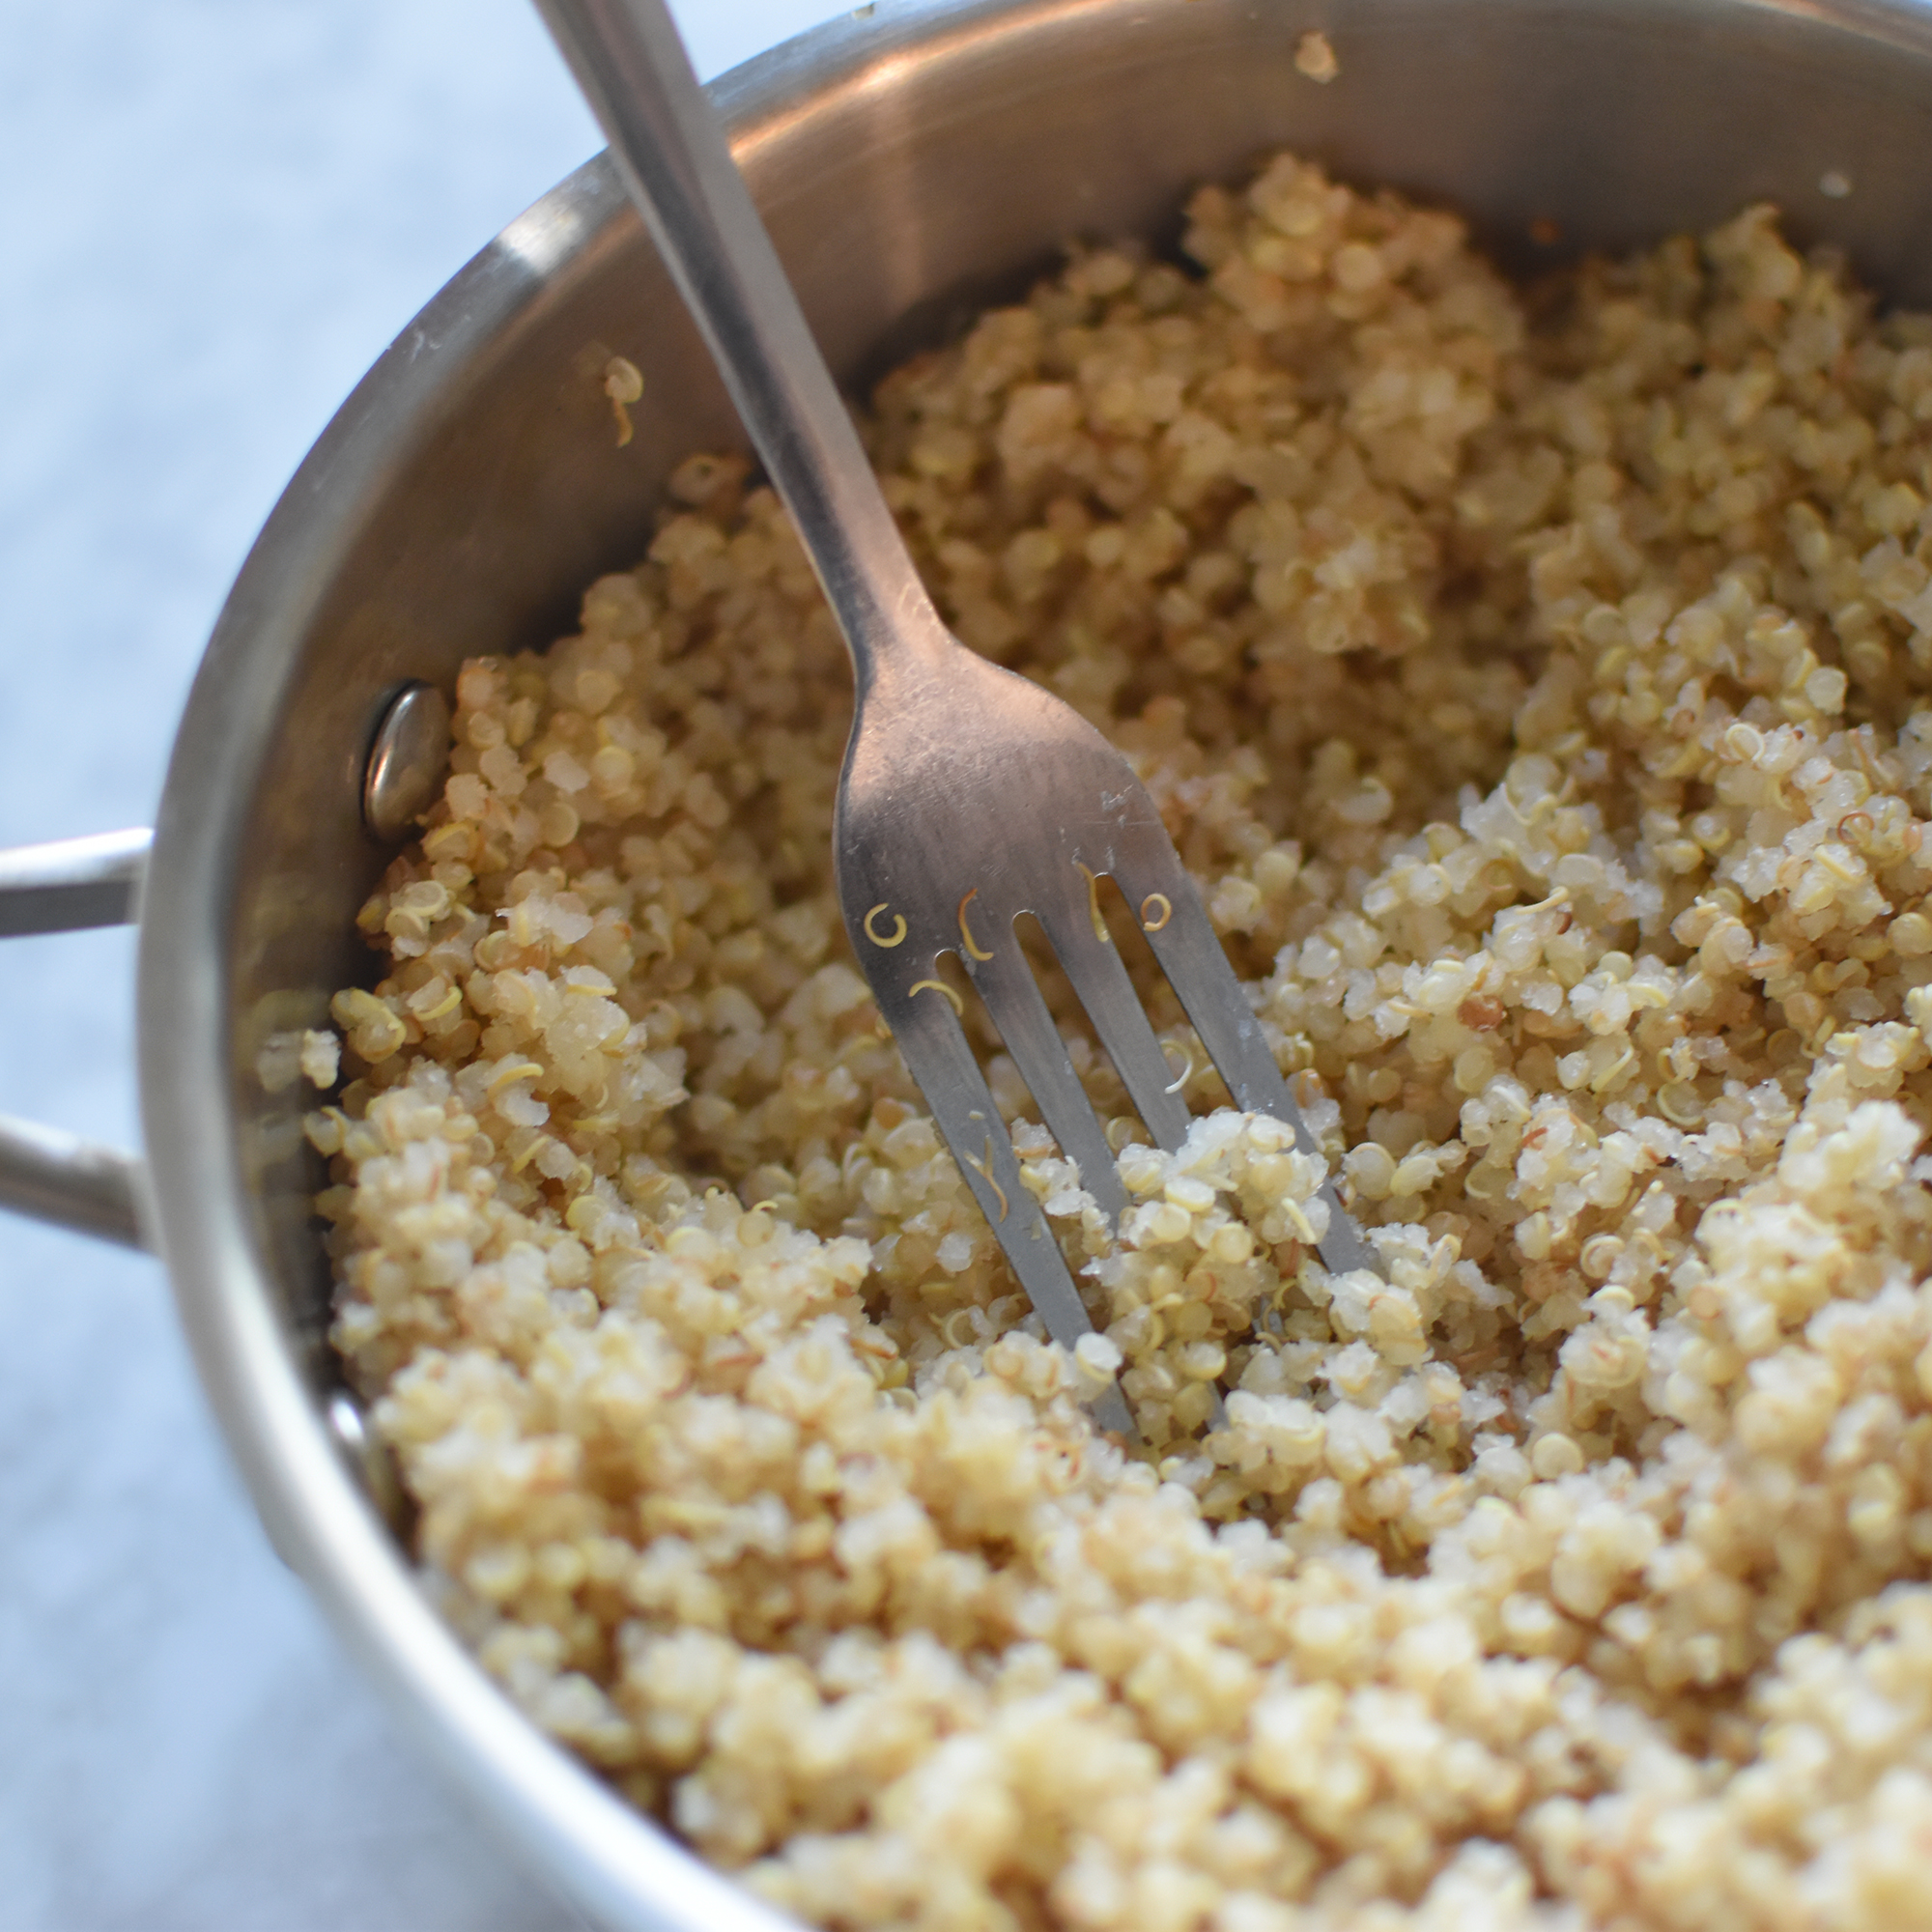 uncover and fluff quinoa with fork